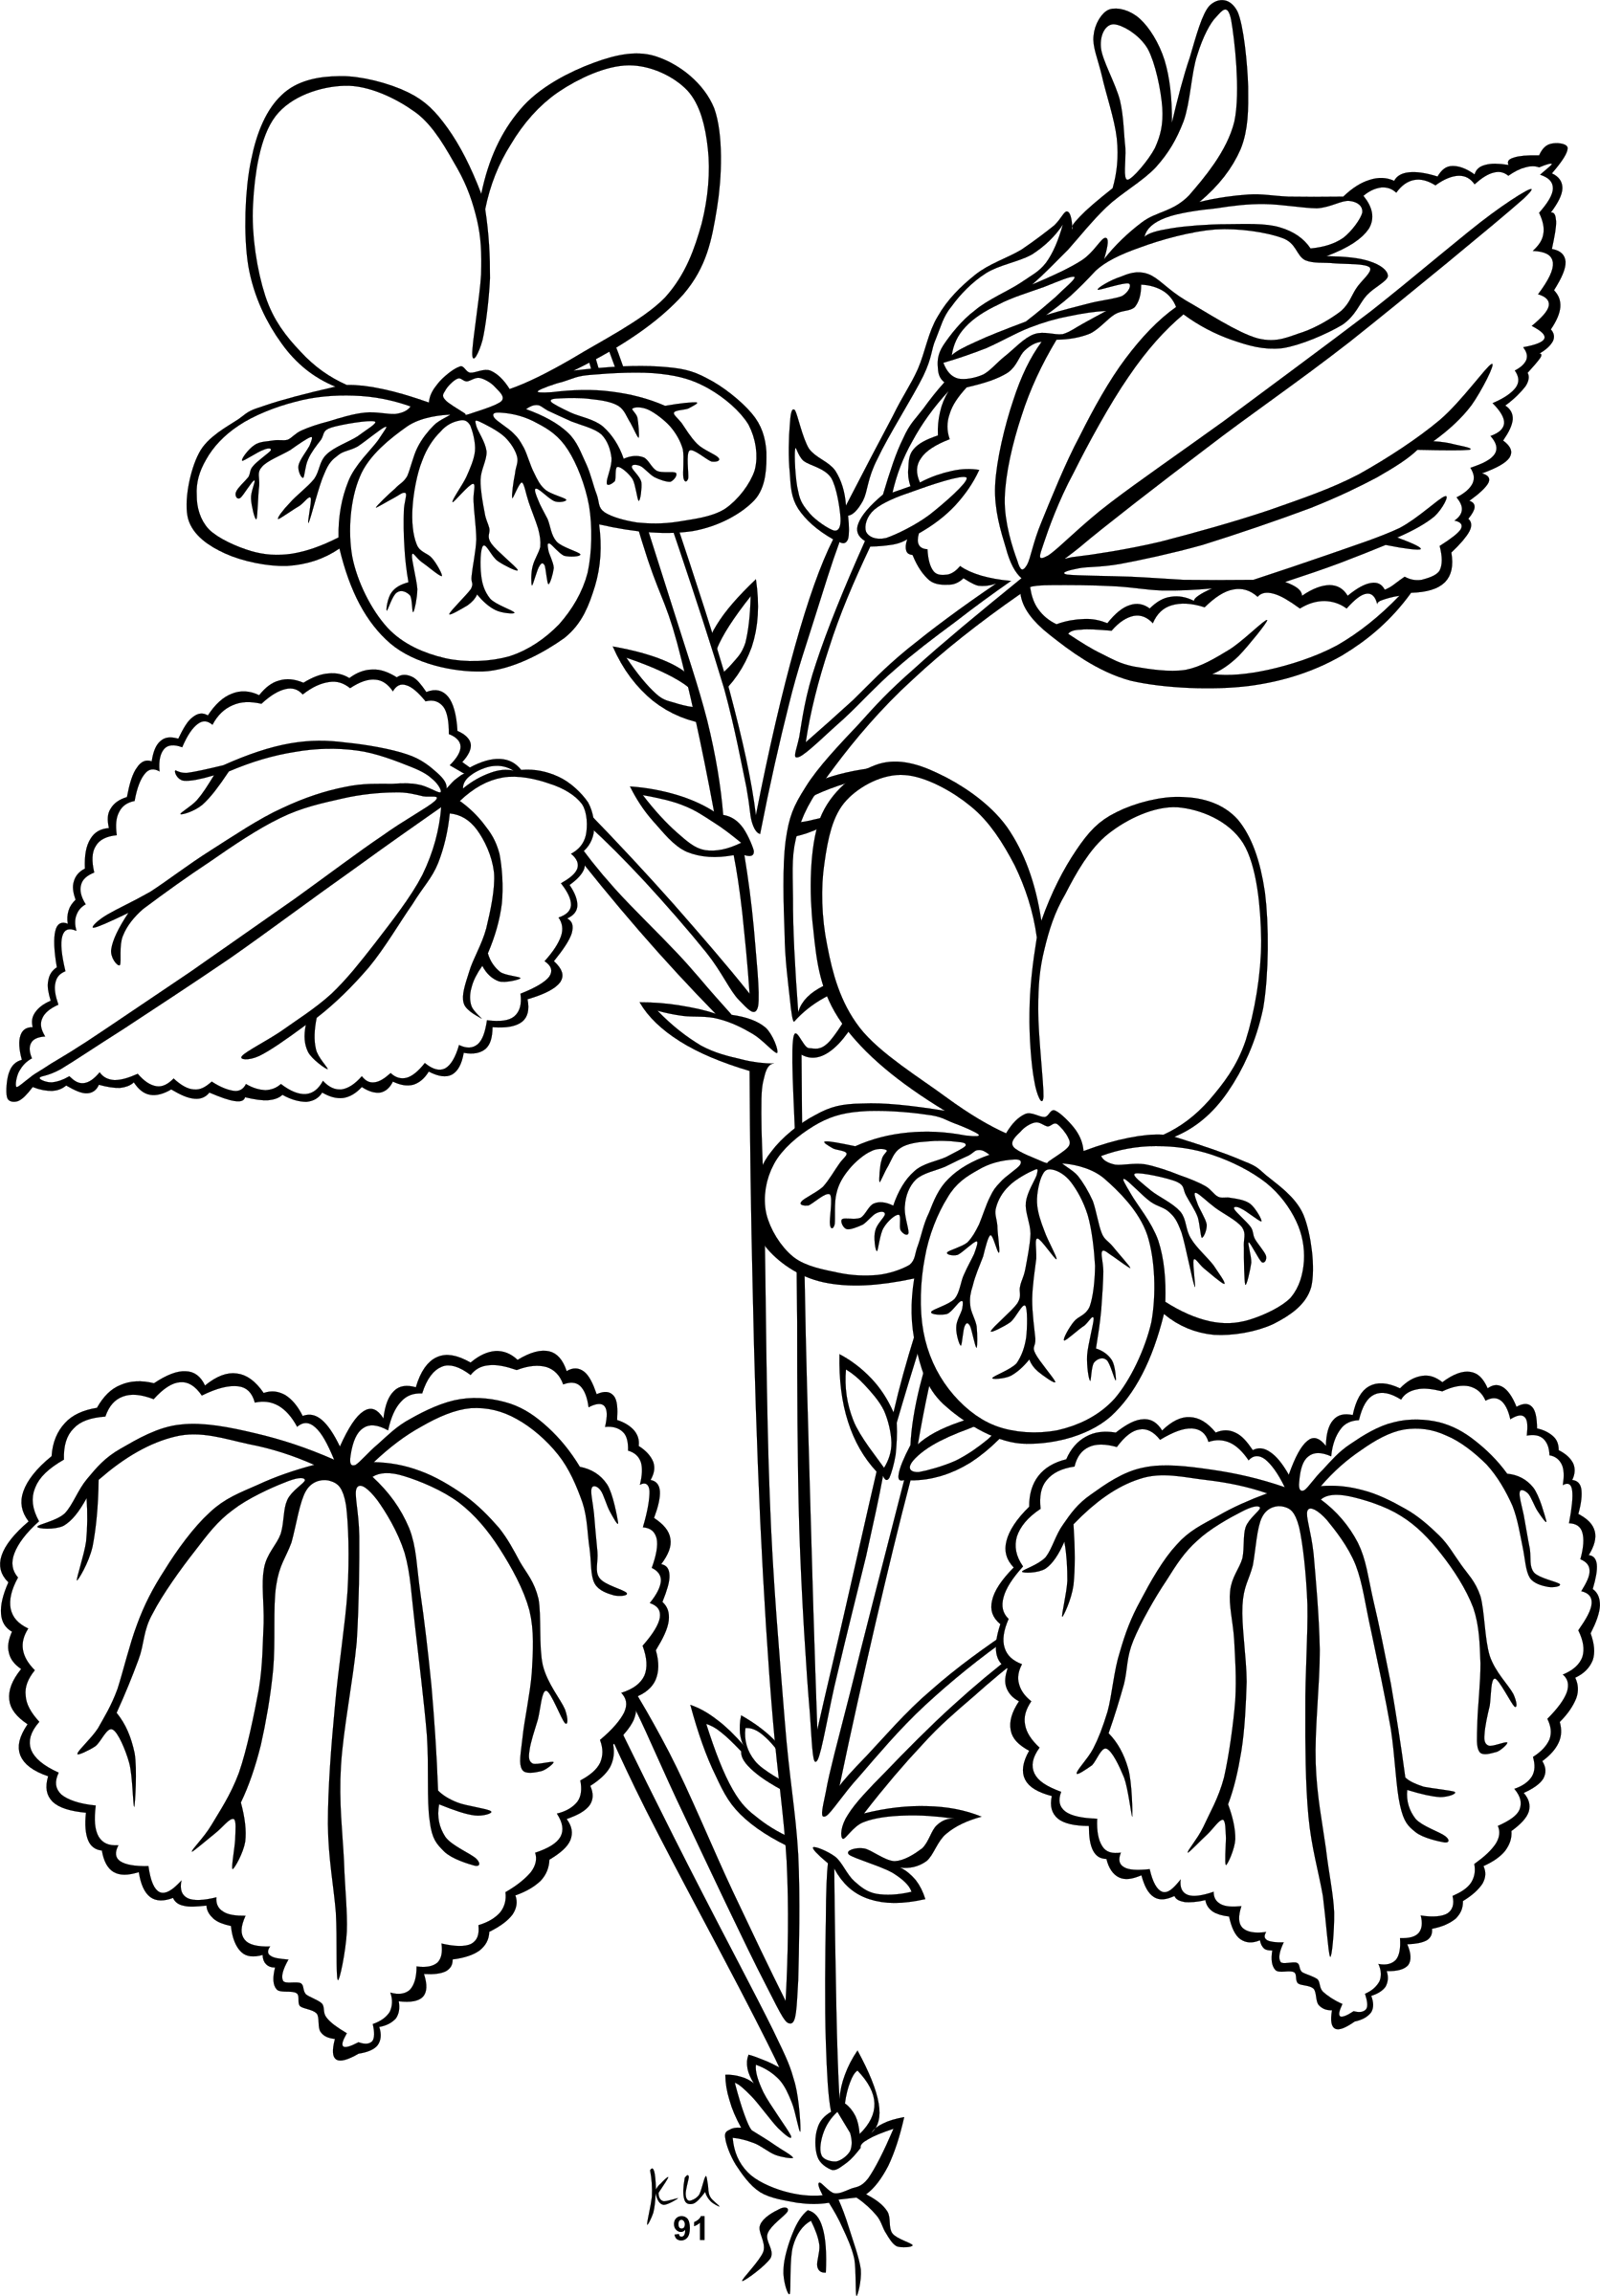 Christmas money tree clipart black and white svg royalty free Sampaguita Drawing at GetDrawings.com | Free for personal use ... svg royalty free